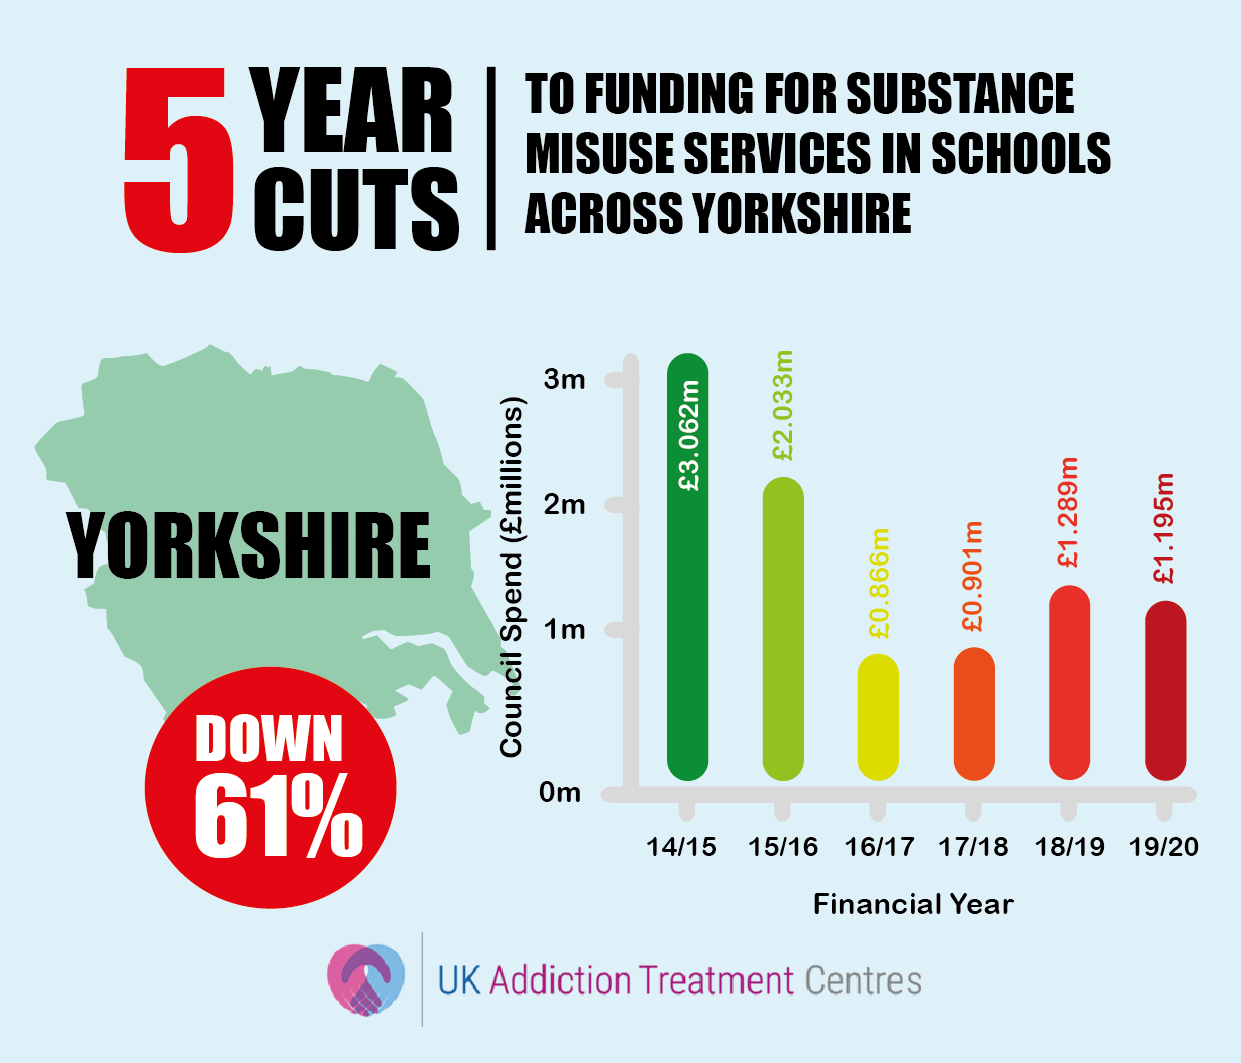 yorskhire addiction cuts infographic